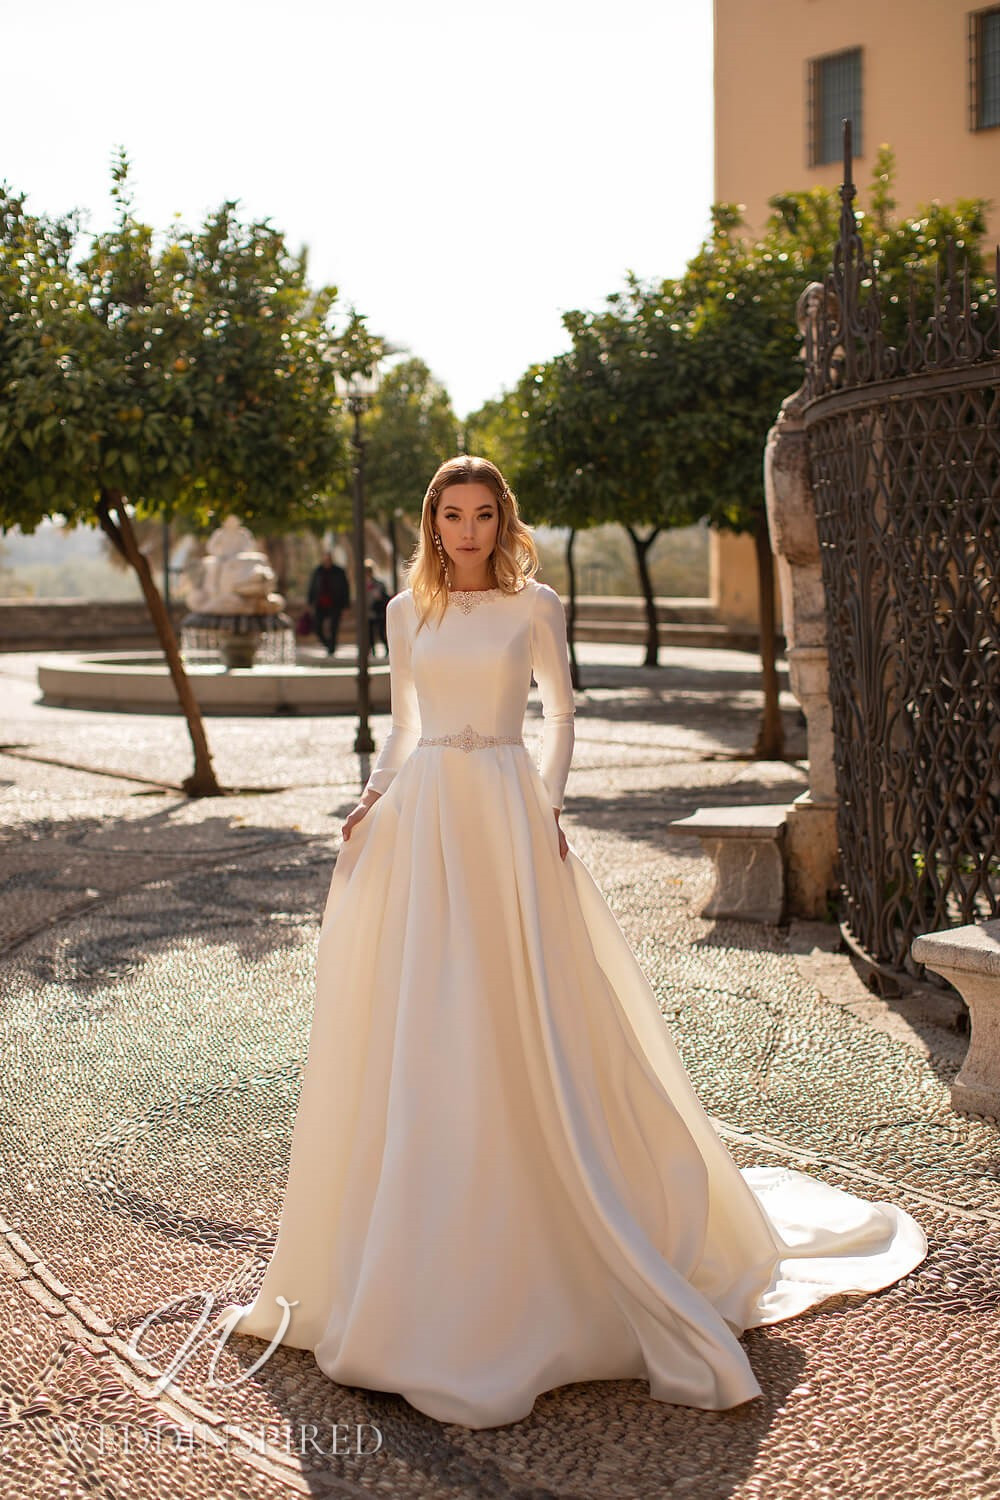 An Essential by Lussano 2021 modest satin A-line wedding dress with long sleeves